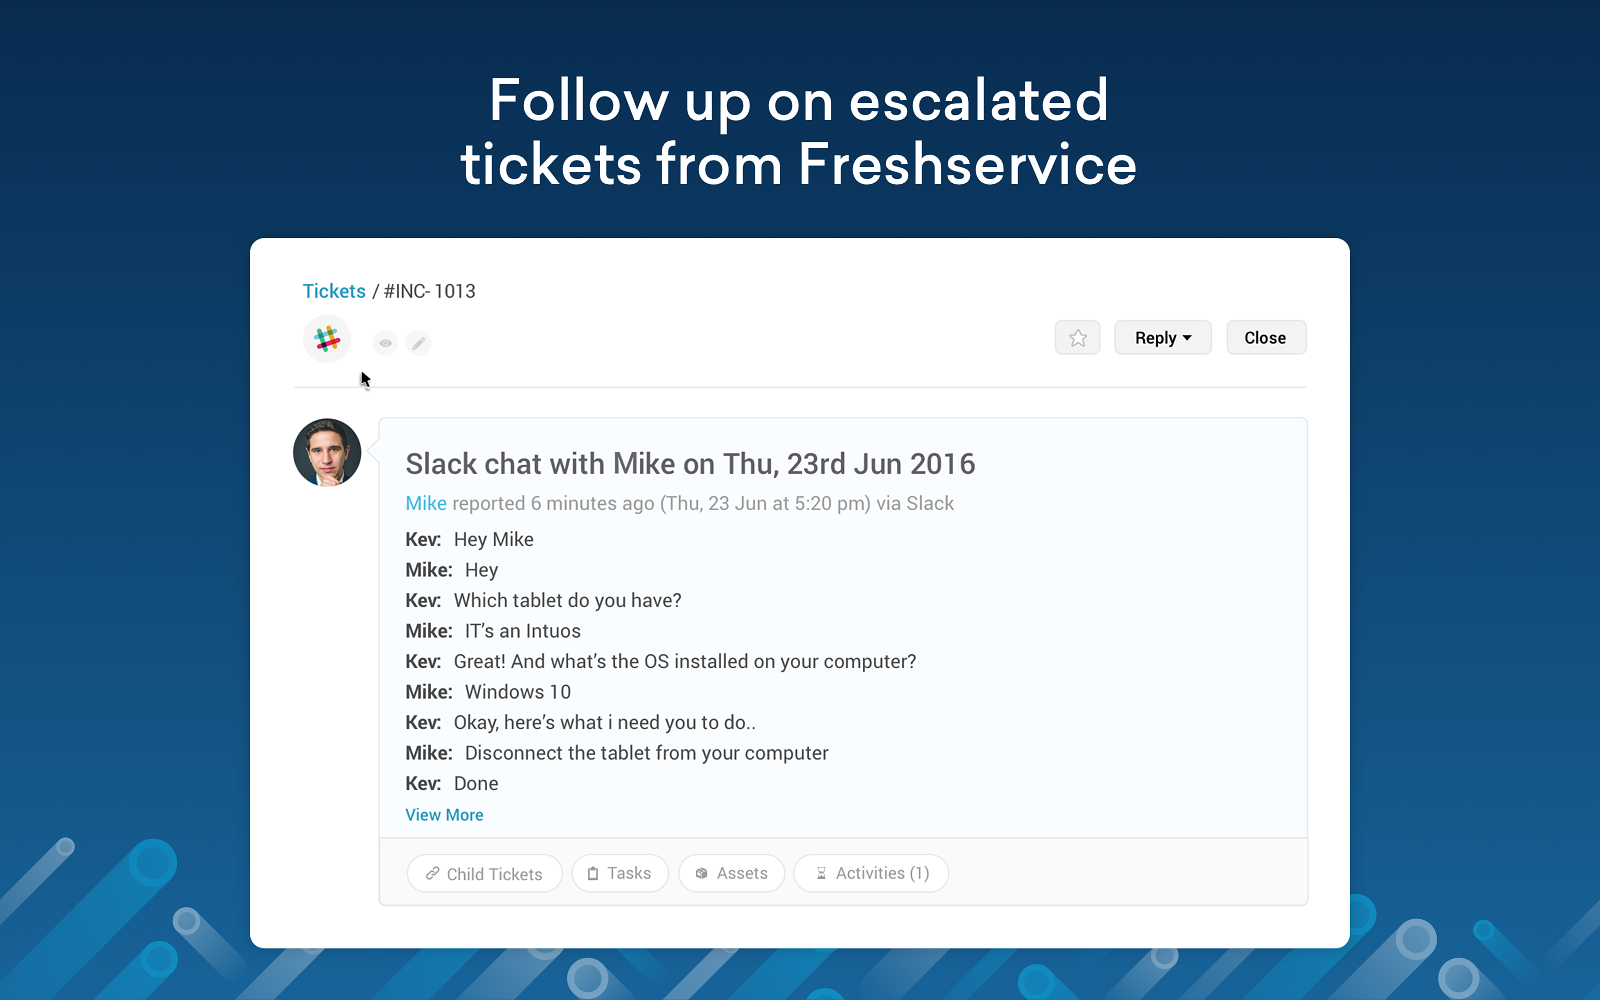 Convert Slack DM Conversations To Tickets In Freshservice 3. Add Slack  Conversation As Ticket Description For Context 4. Mark Slack Users As  Requesters And ...